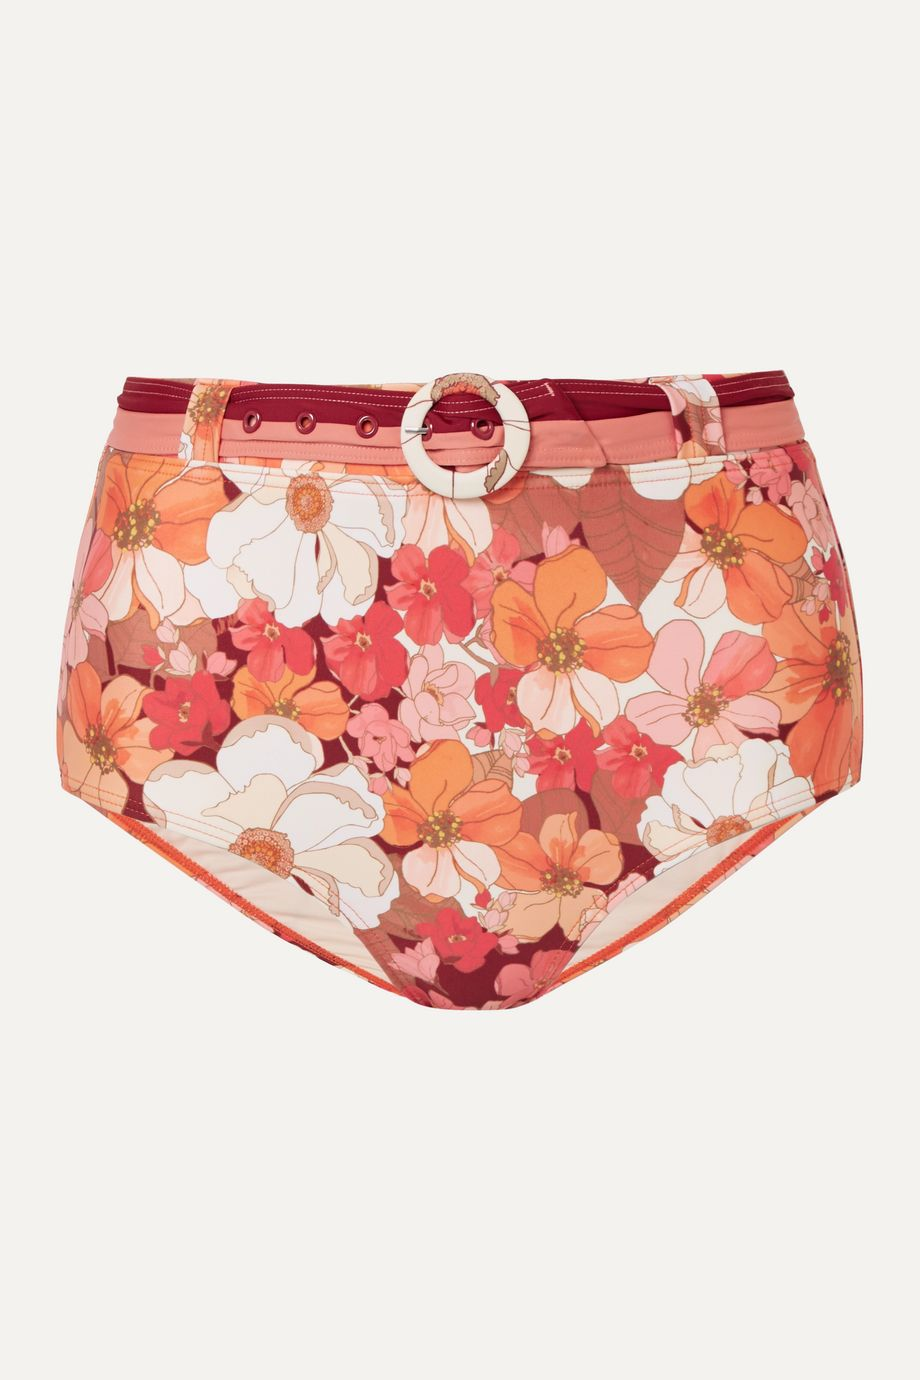 Peony + NET SUSTAIN belted floral-print bikini briefs